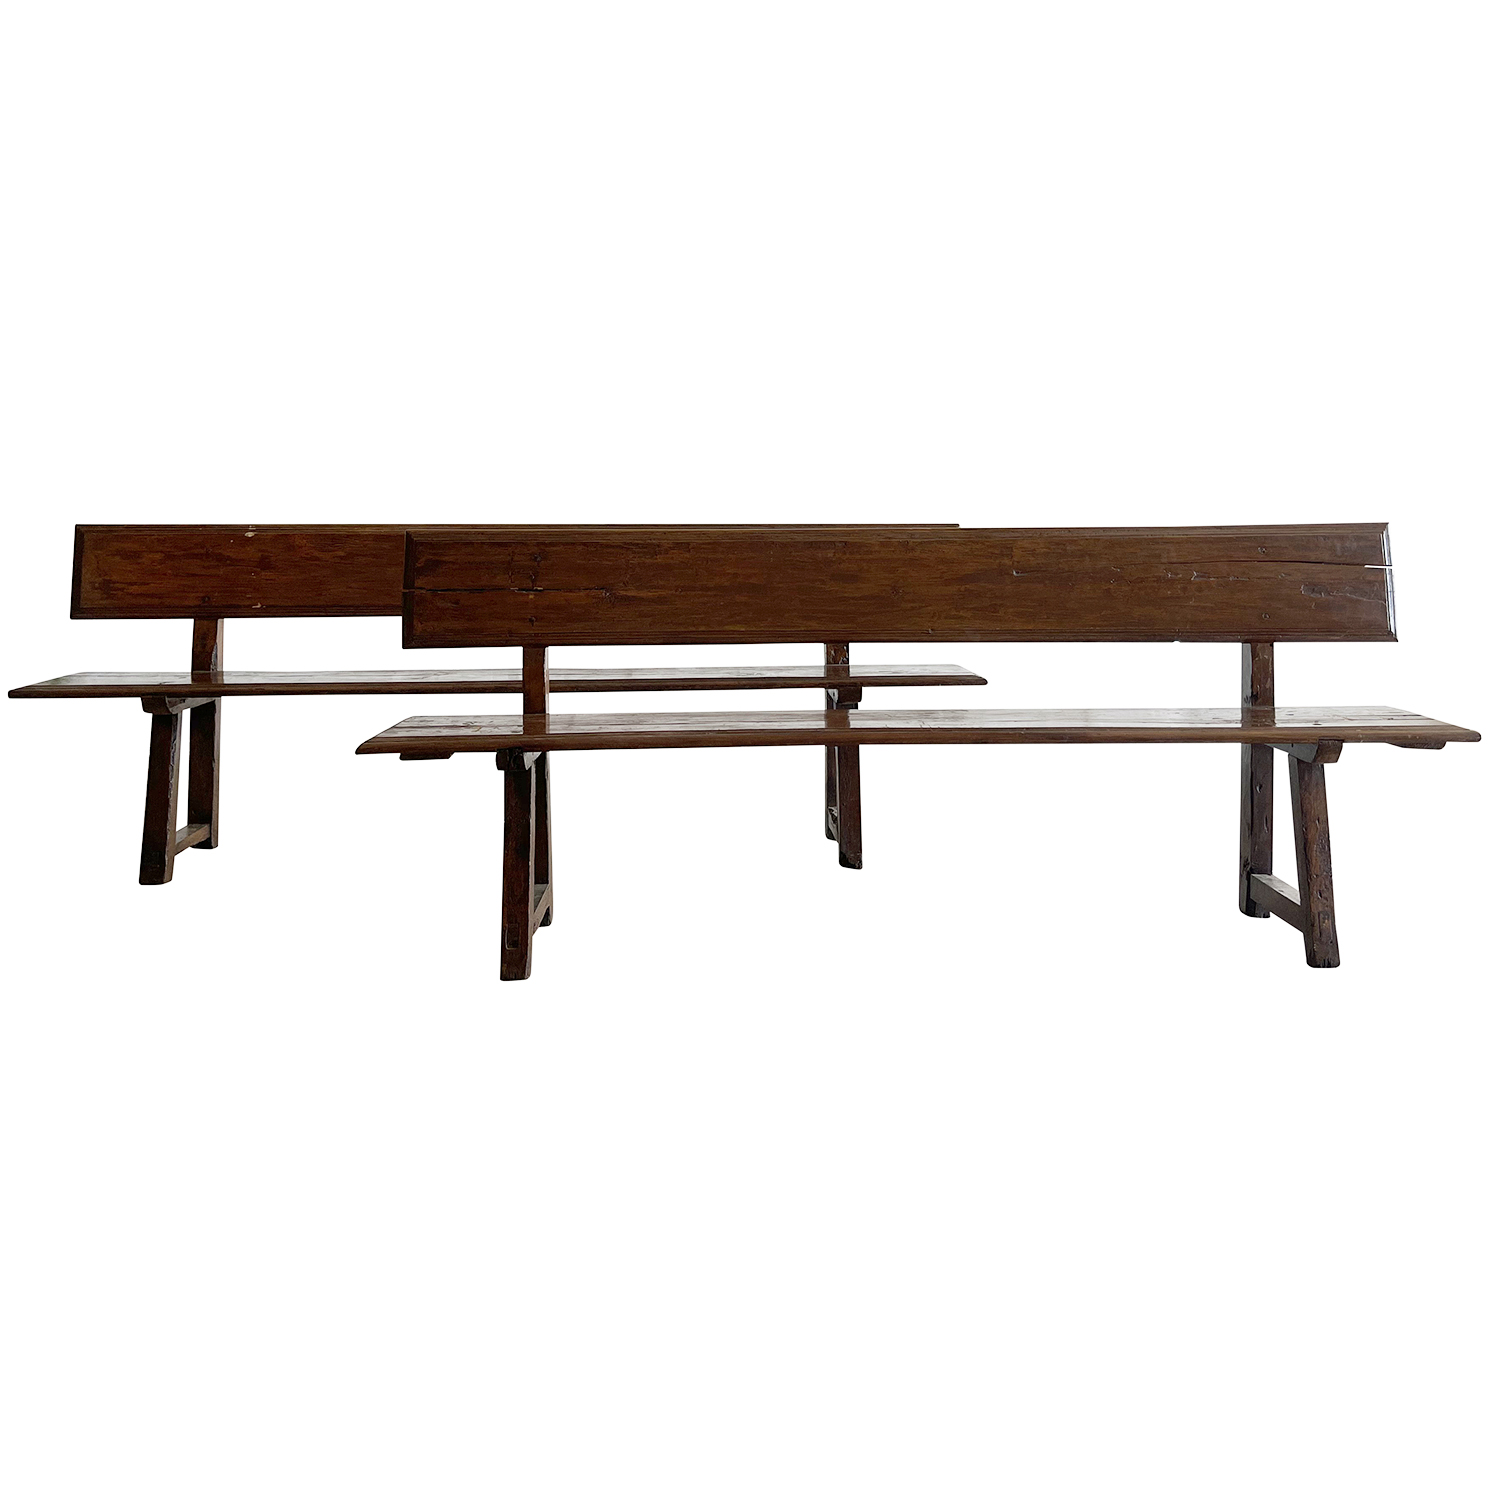 19th Century Pair of Italian Benches